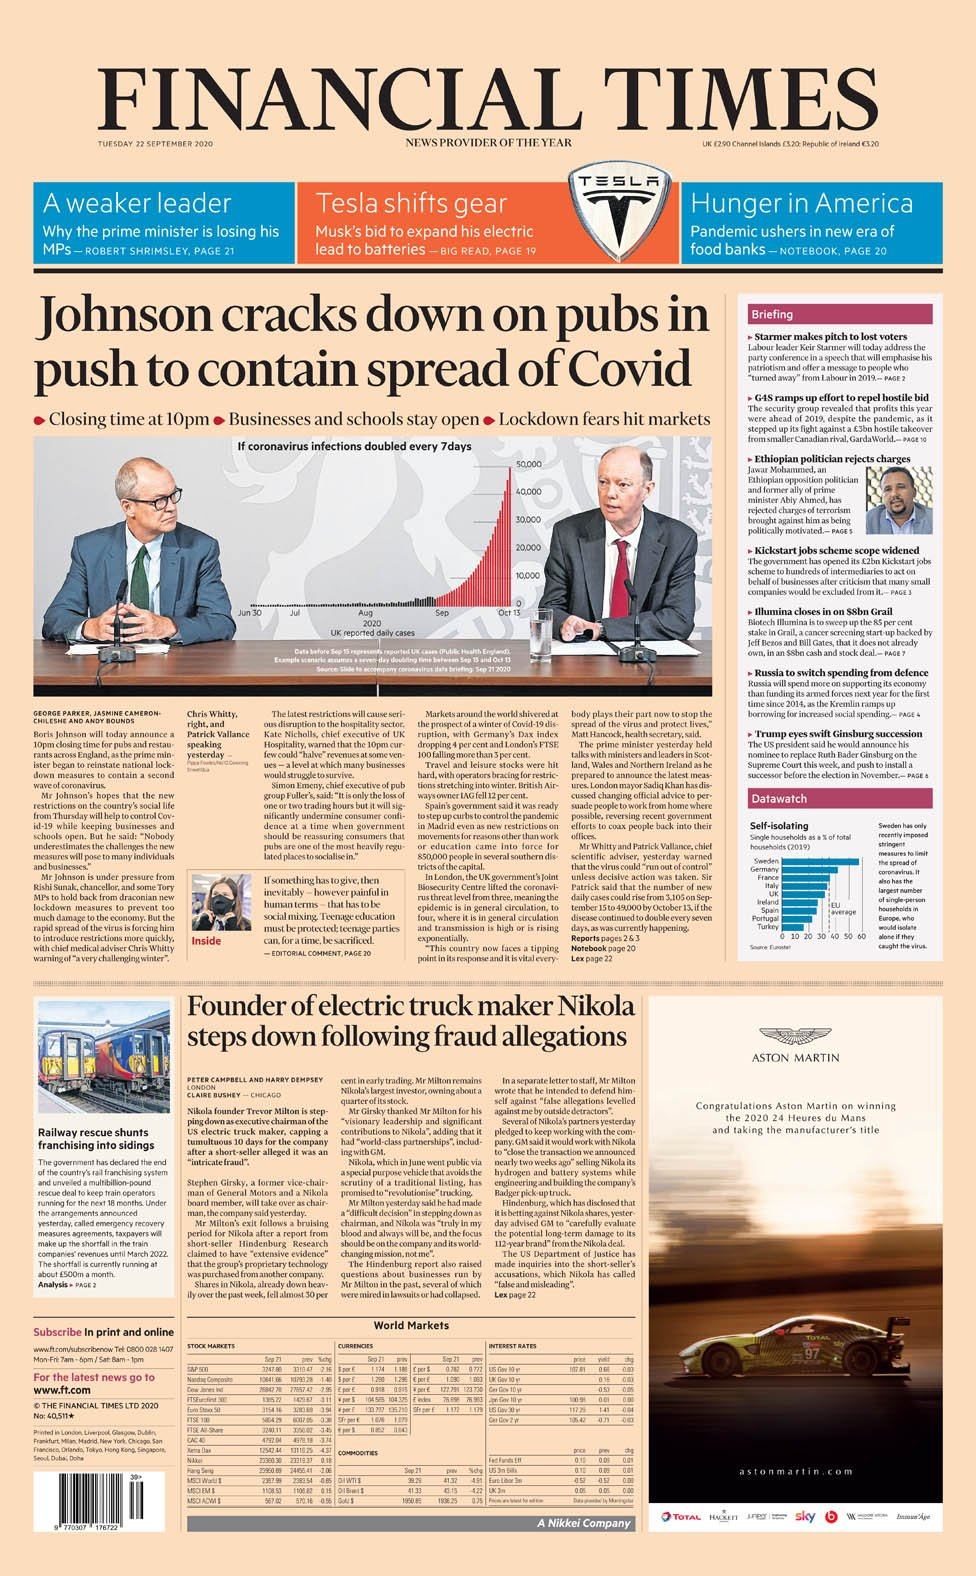 The Papers: 'The second shutdown begins' as Covid fears grow thumbnail